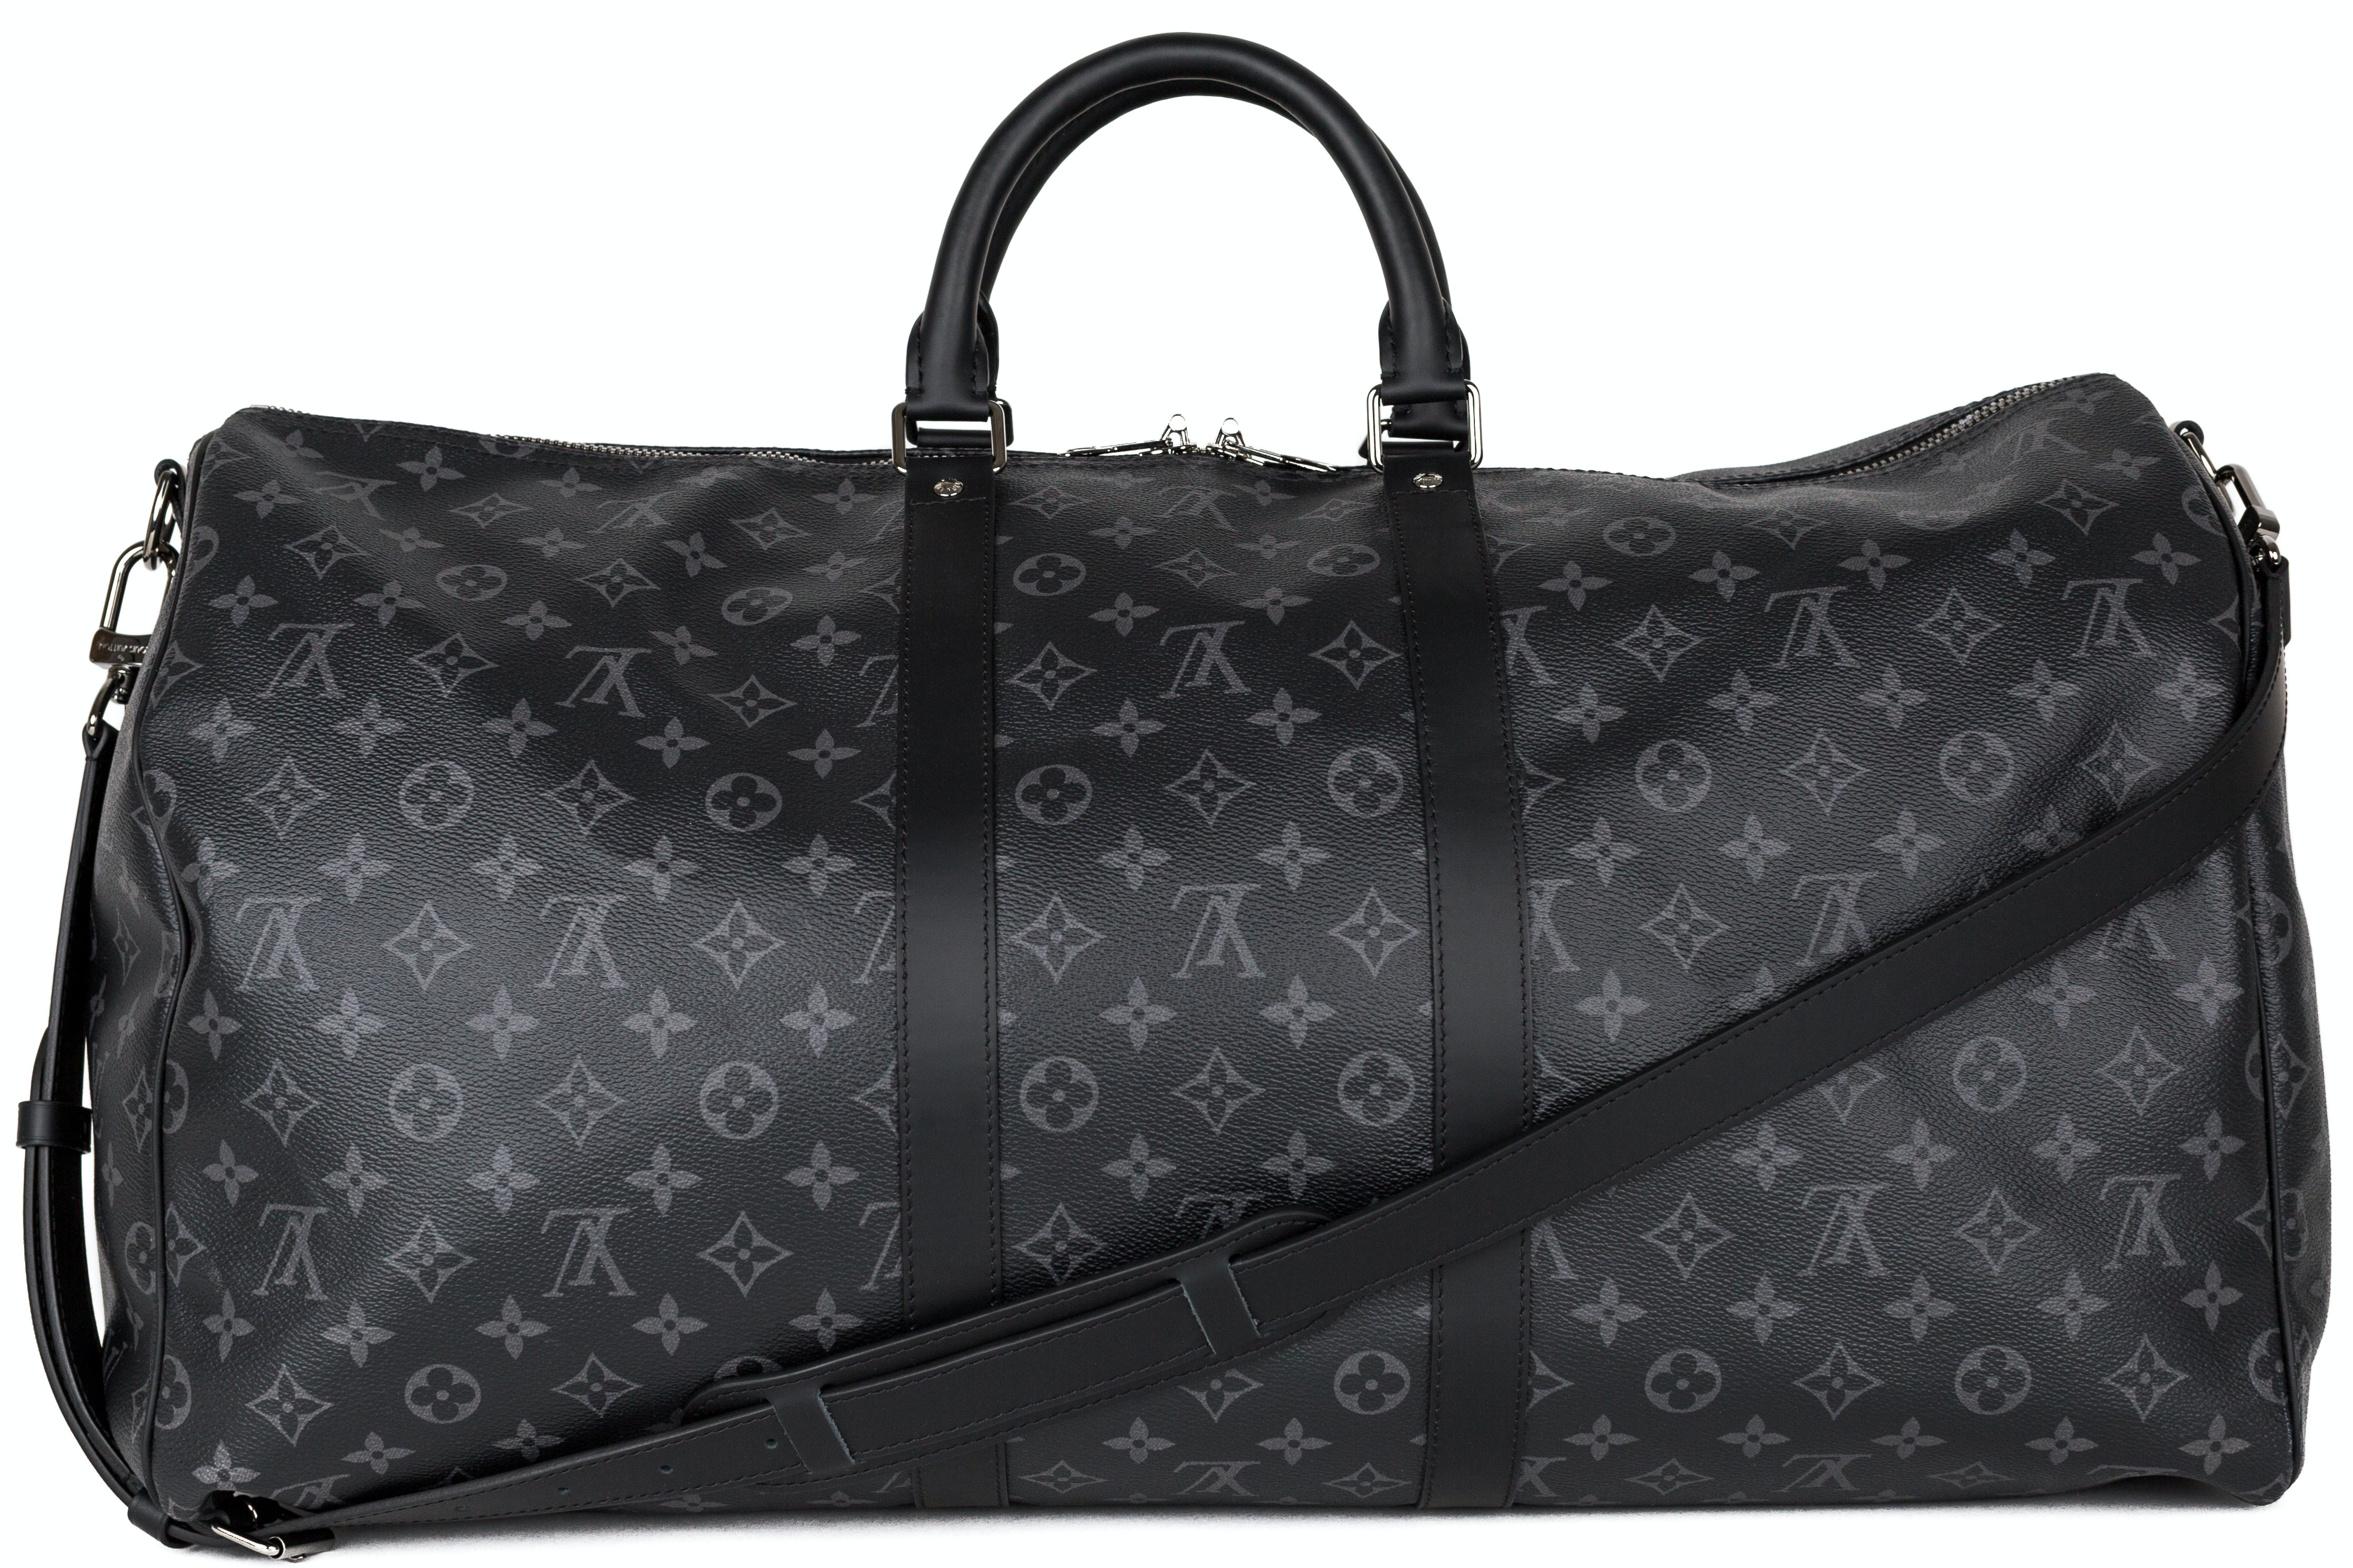 Louis Vuitton Keepall Bandouliere (Without Accessories) Monogram Eclipse 55 Gray